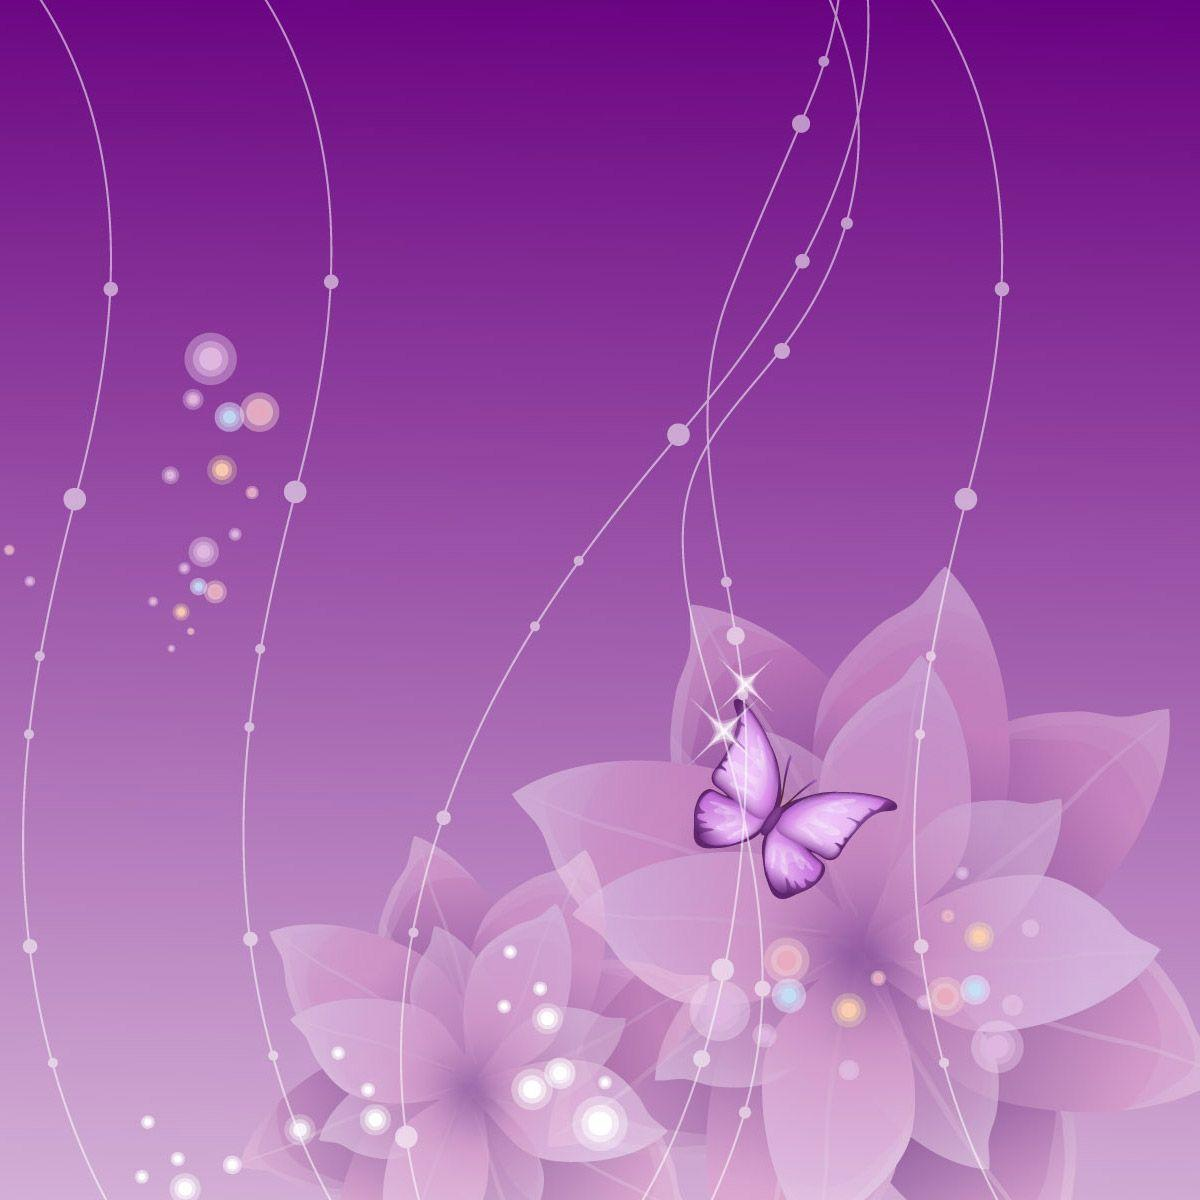 Purple Backgrounds Image - Wallpaper Cave